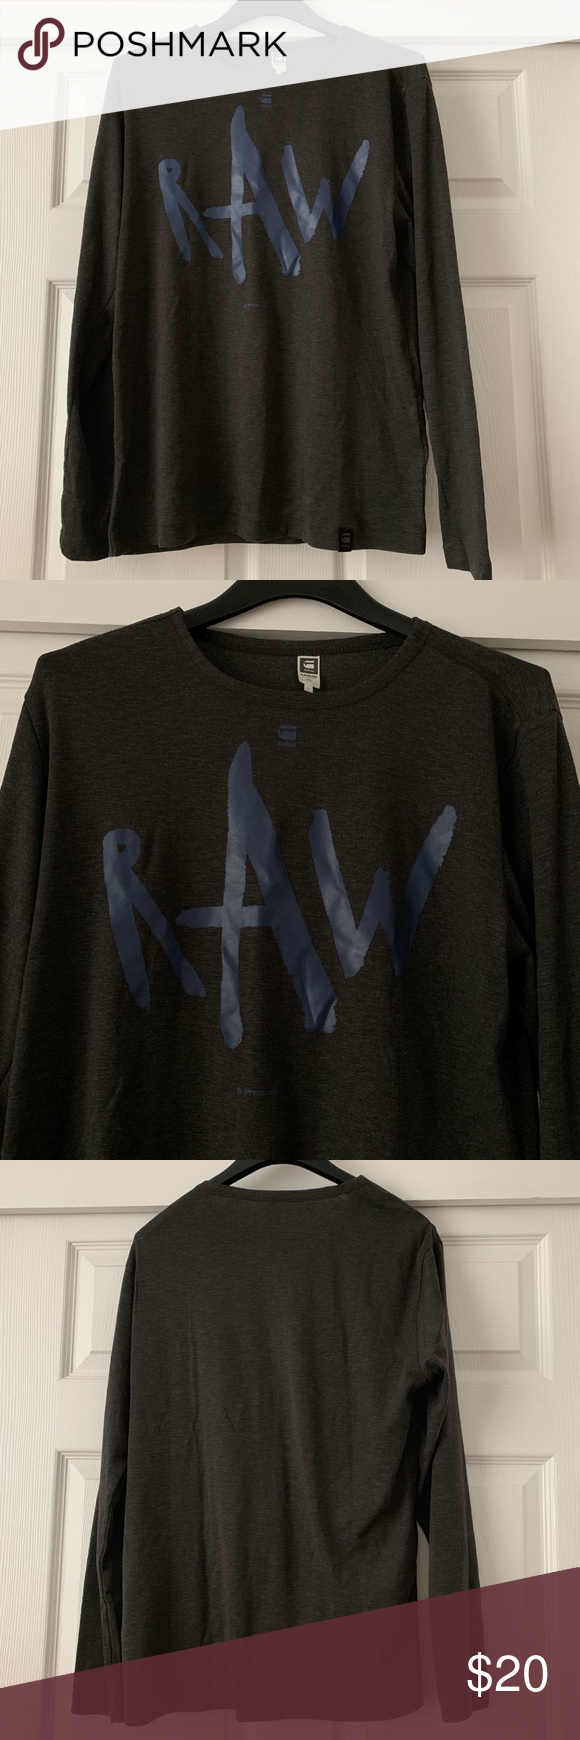 GStar RAW Shirt (With images) G star raw, Long sleeve